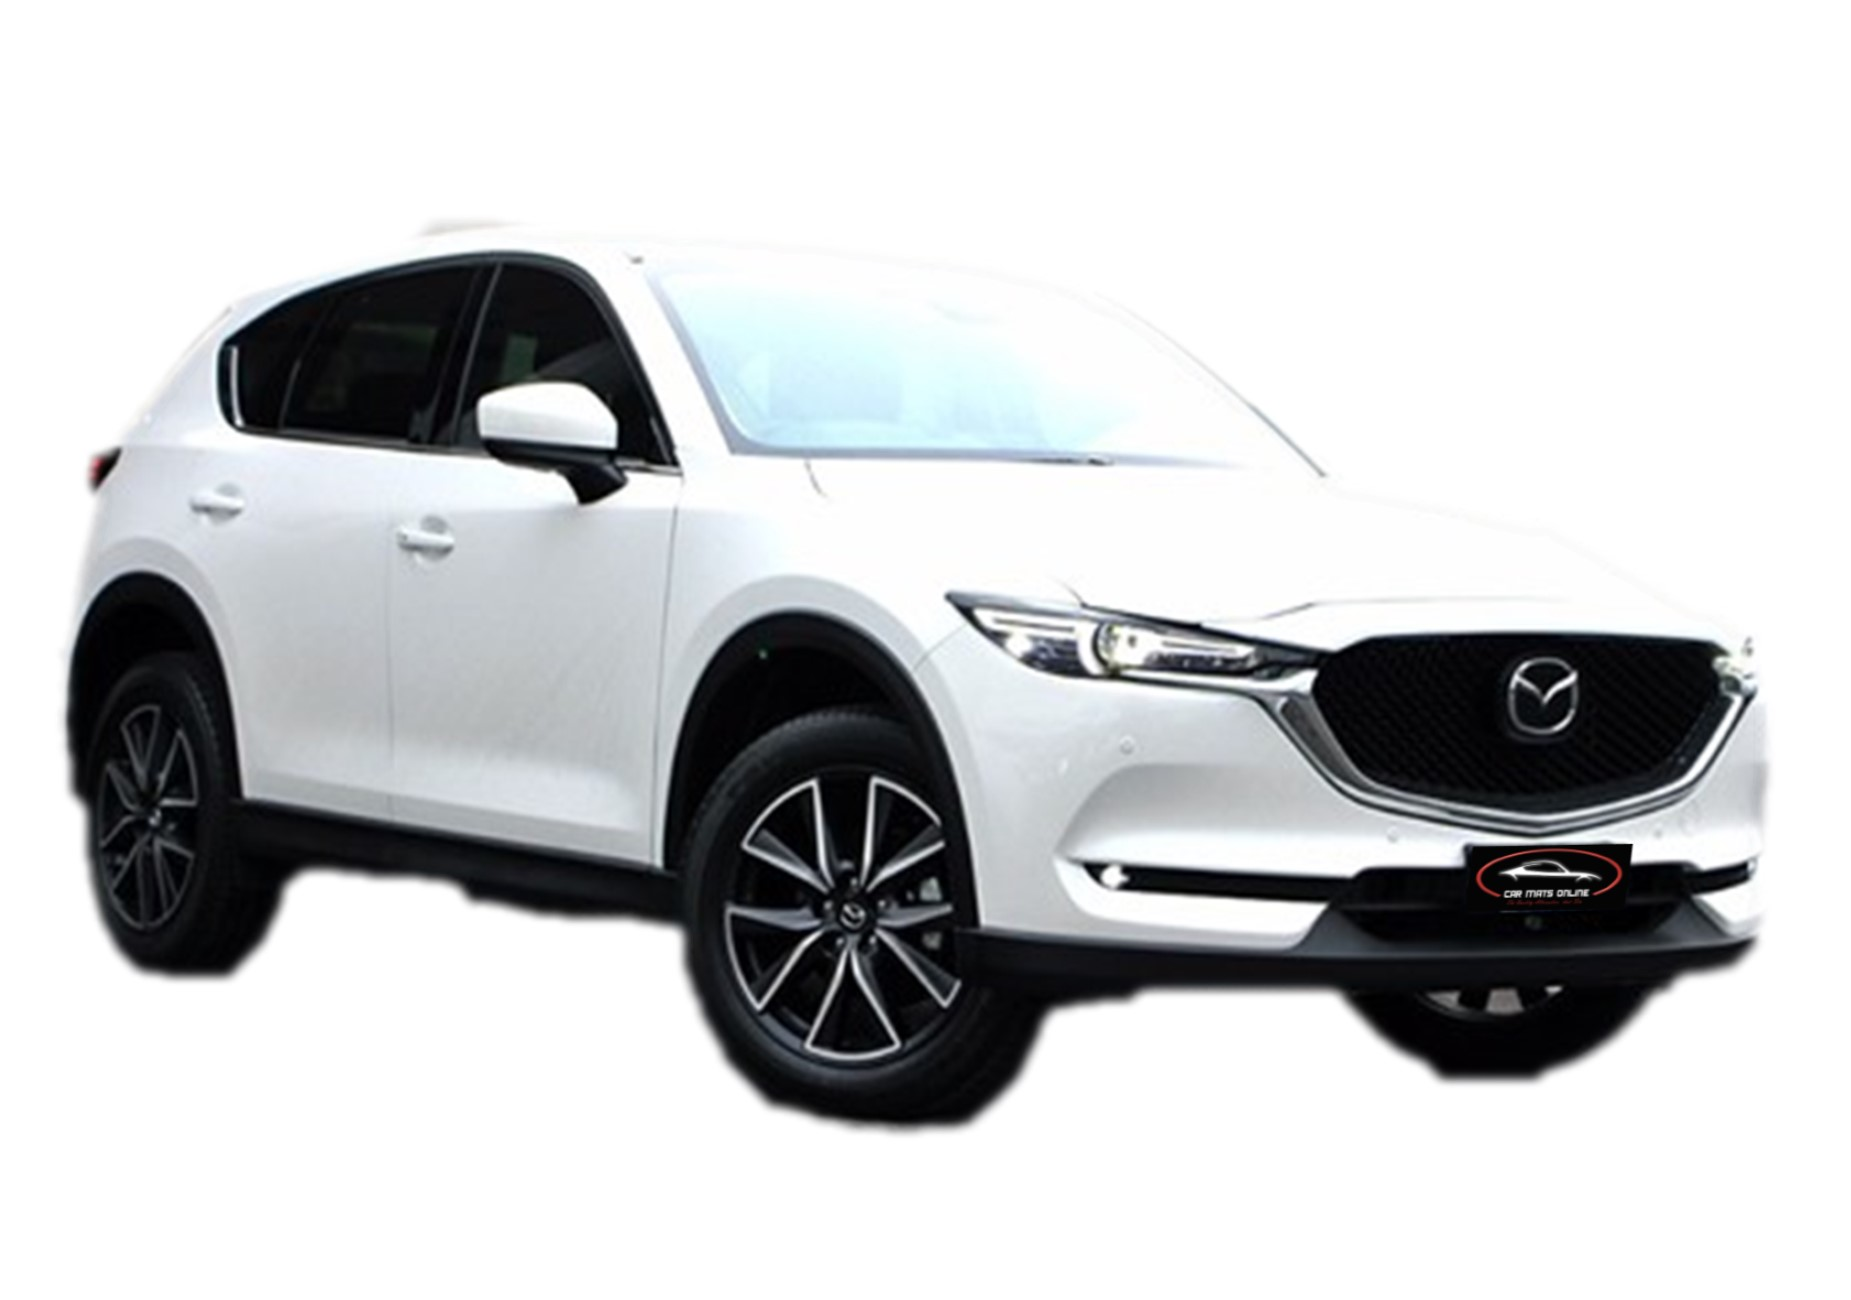 mazda-cx5-kf-car.jpg